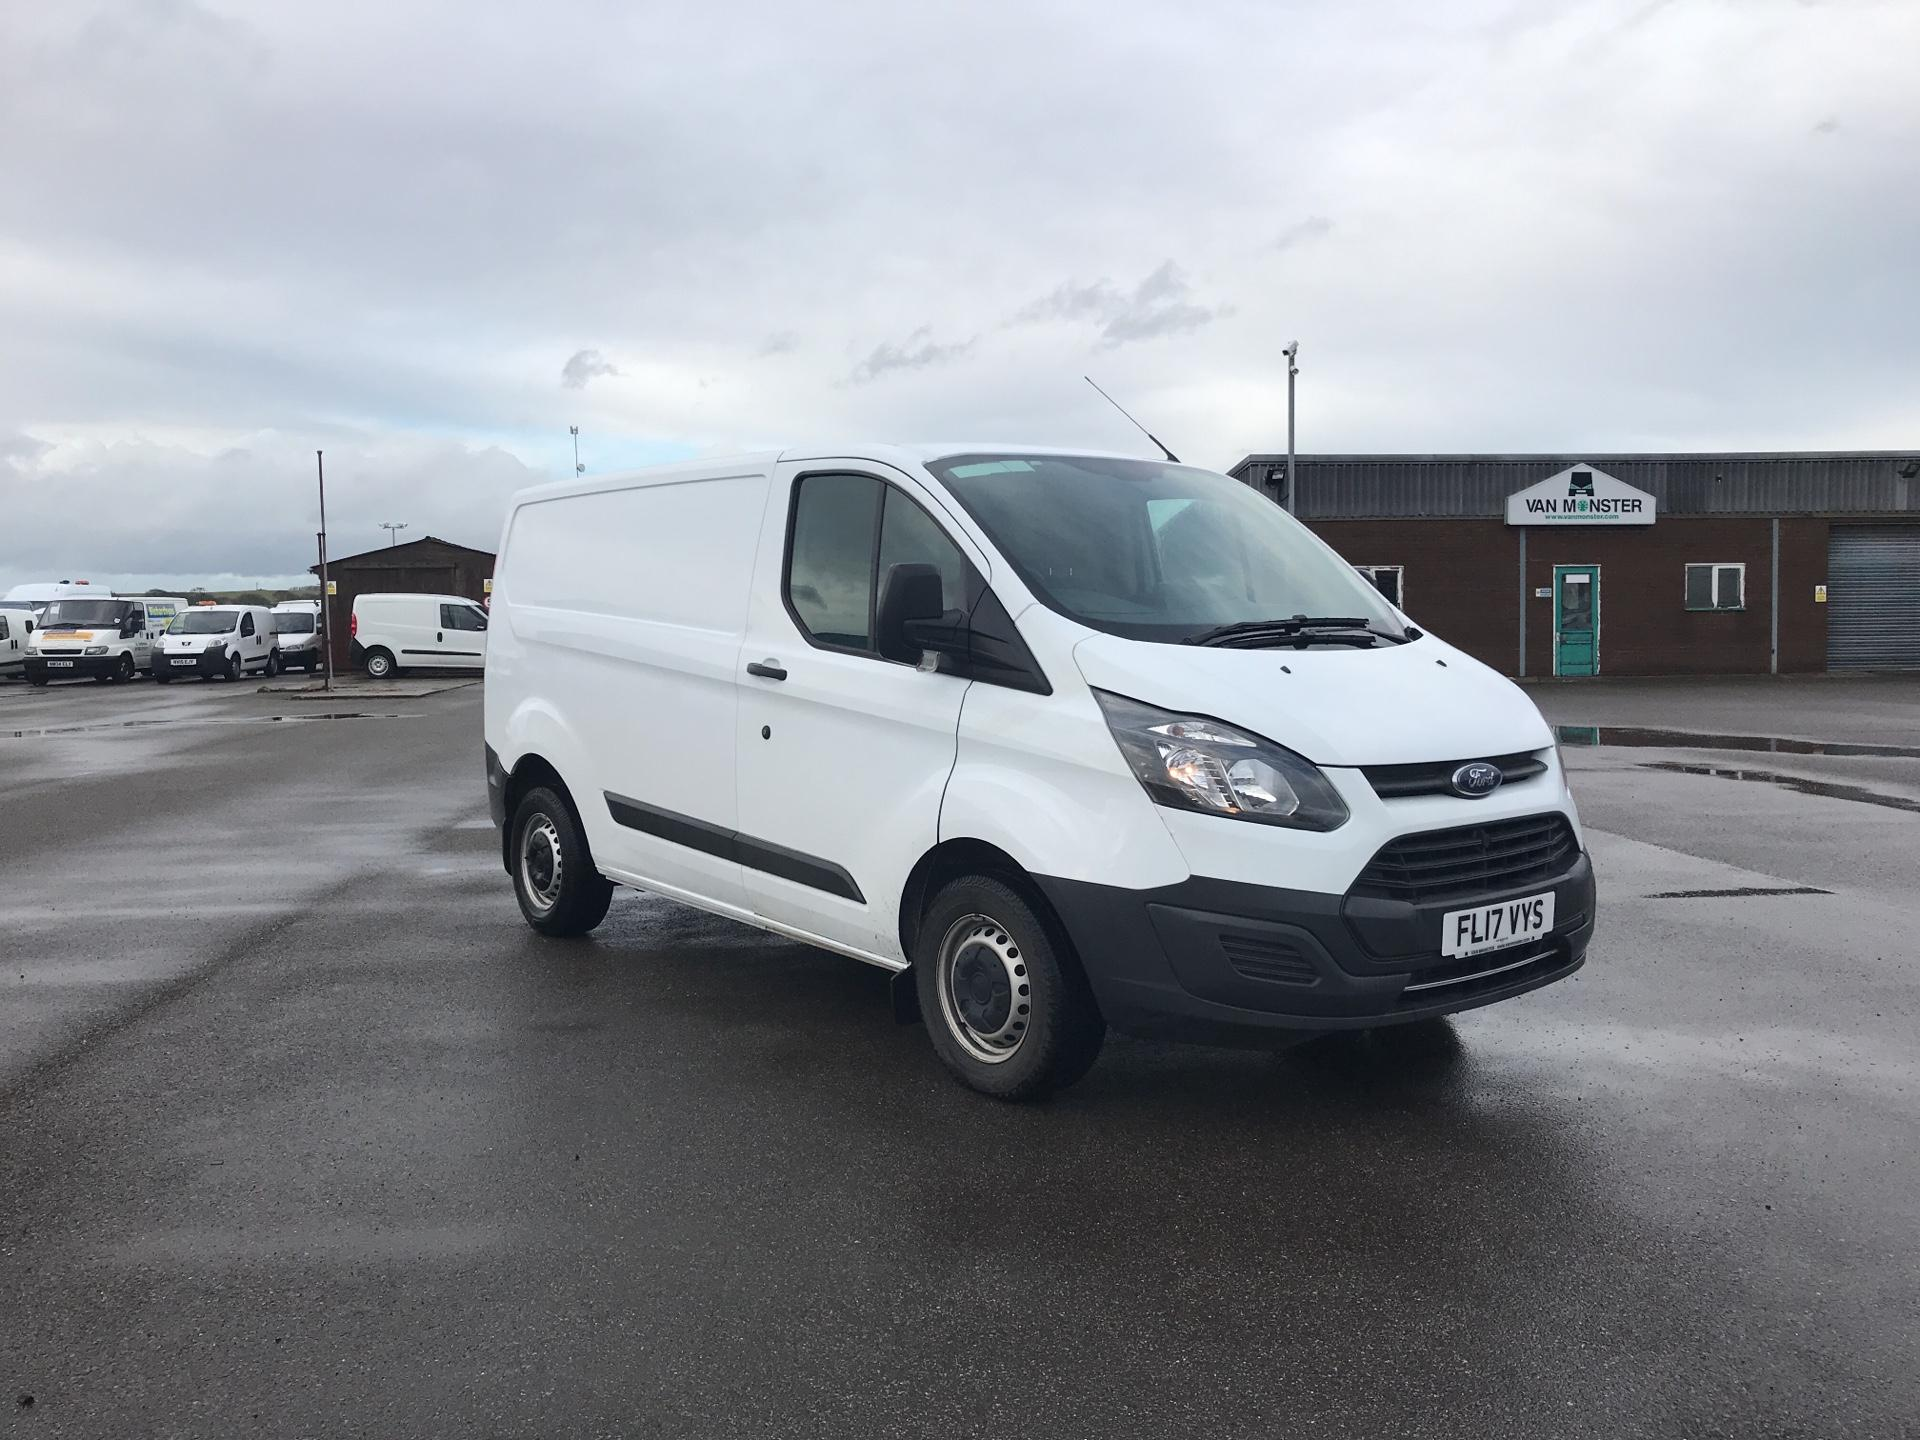 2017 Ford Transit Custom 290 L1 DIESEL FWD 2.0 TDCI 105PS LOW ROOF VAN EURO 6 (FL17VYS)